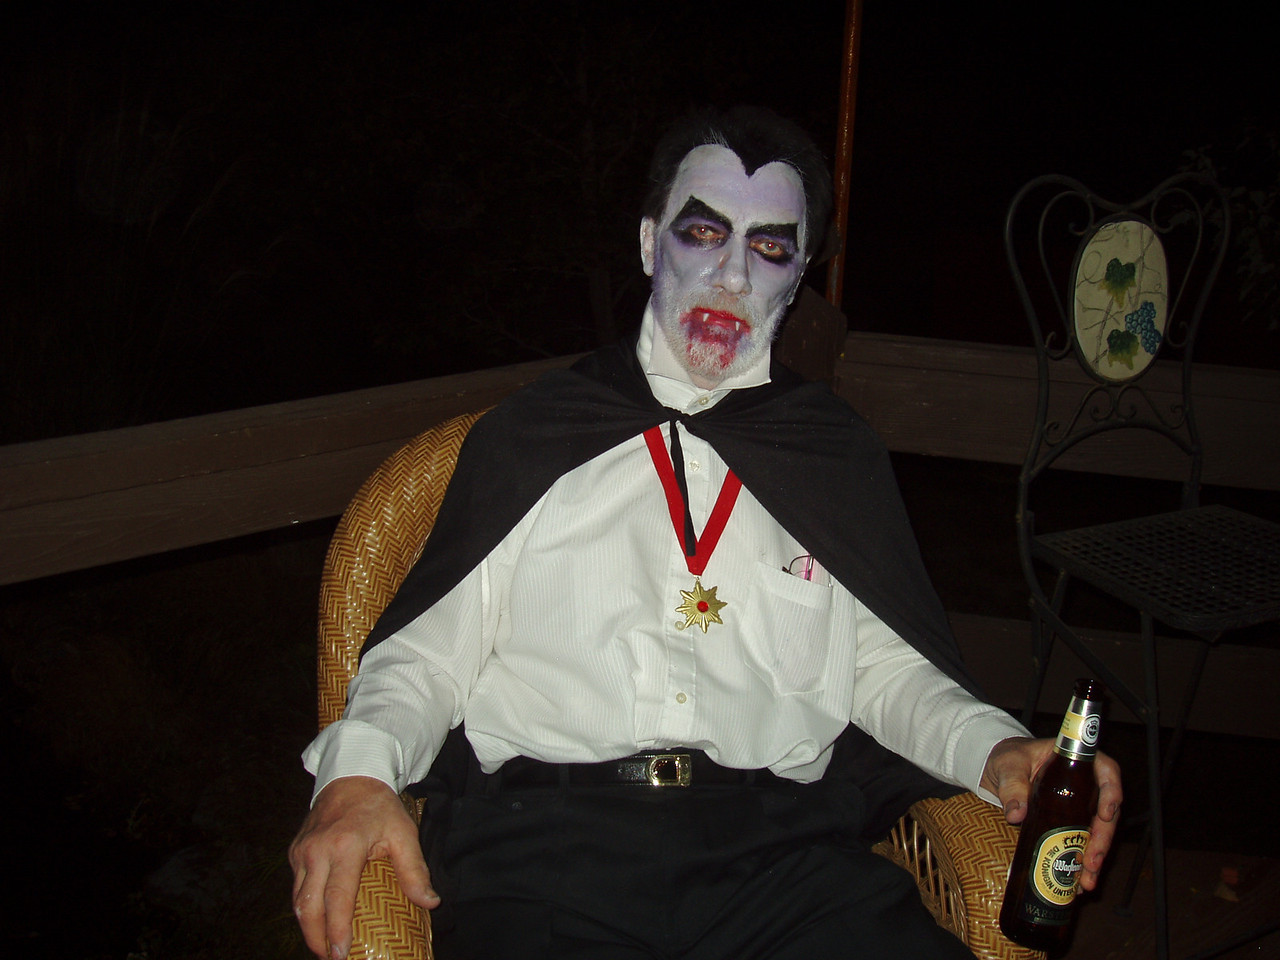 Count Dracula at a Halloween Party